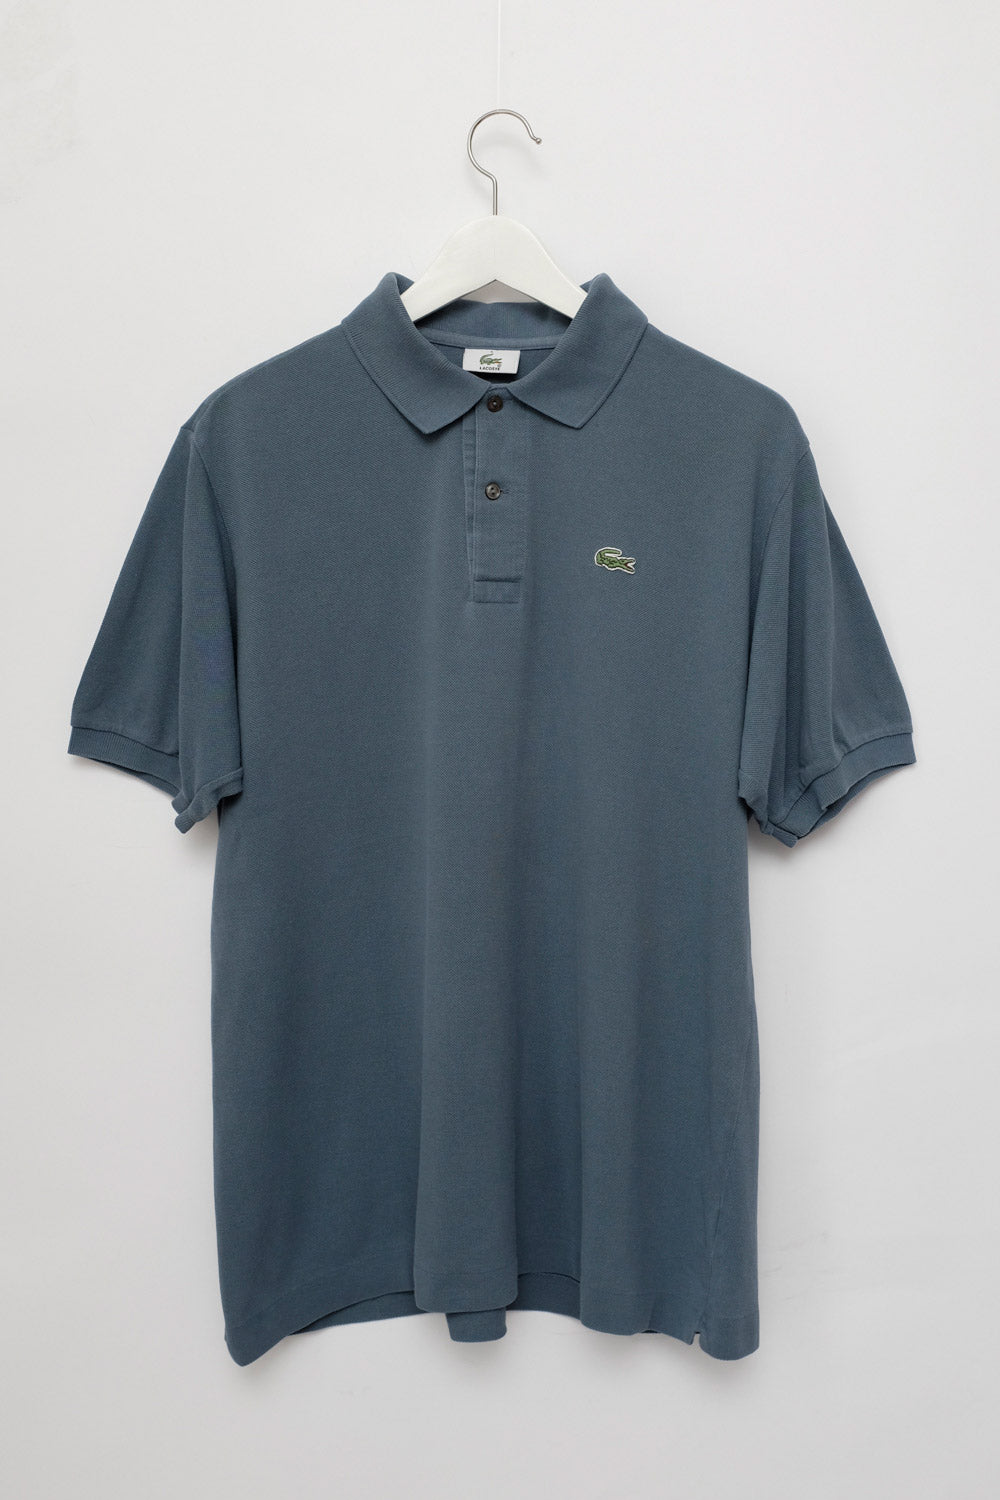 0023_VINTAGE LACOSTE POLO T-SHIRT